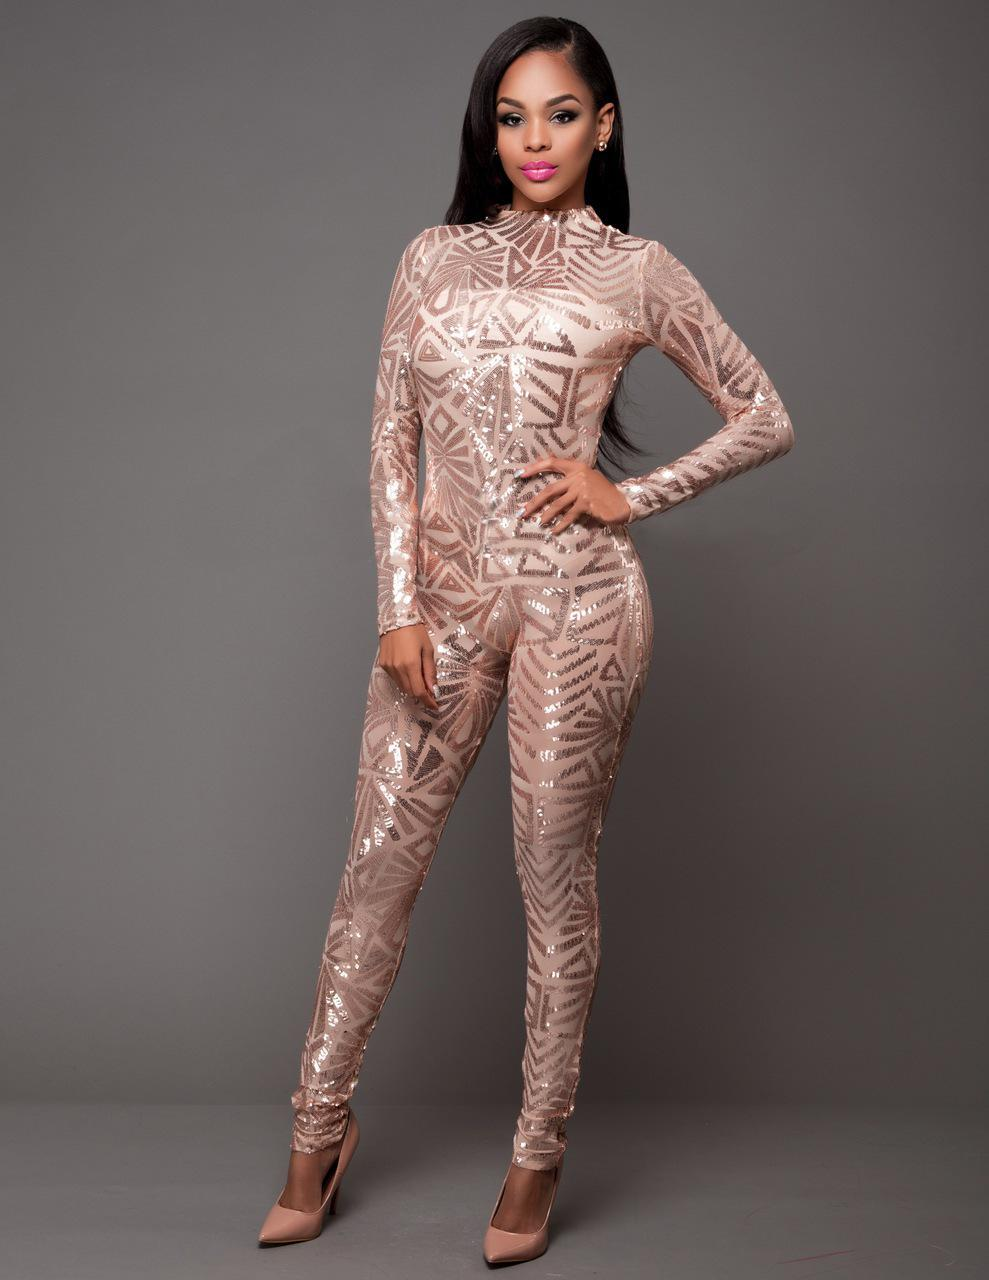 2019 Spring Women Sequin Jumpsuit Sexy O Neck Mesh Patchwork Bodysuit  Glitter Long Sleeve Romper Women Party Club Catsuit N272 From Rykeri 2b8c90e026